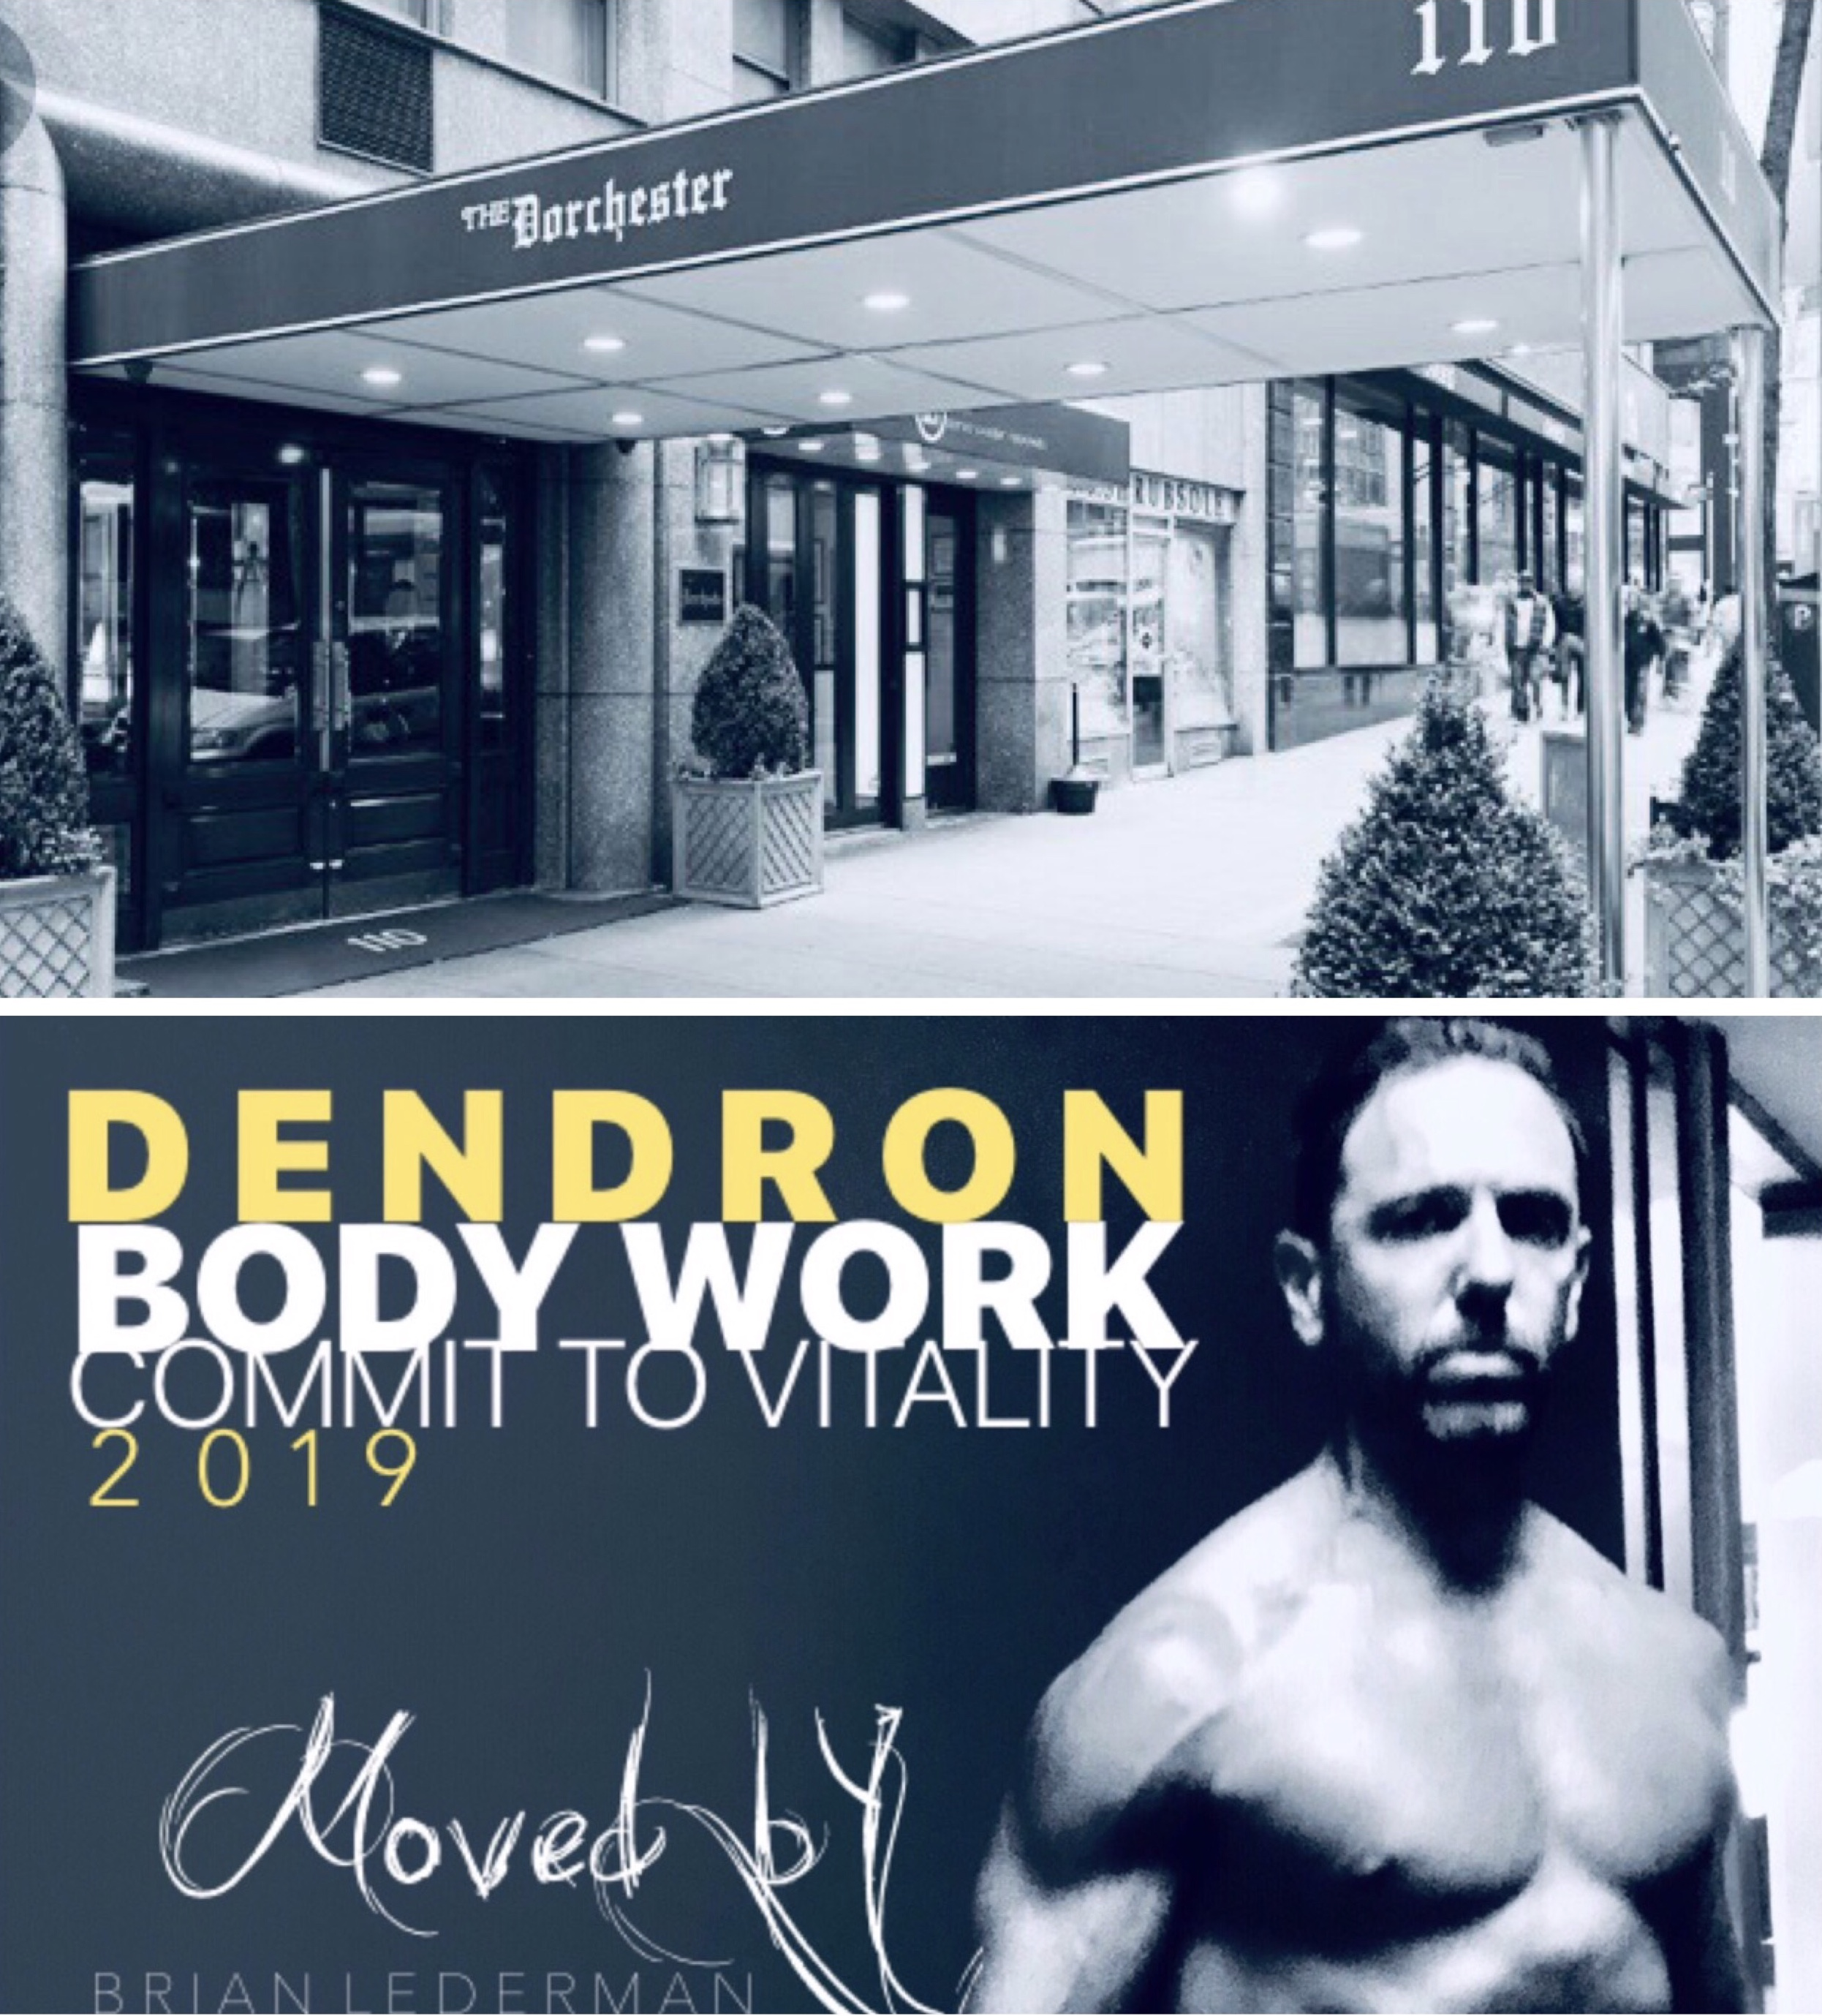 DENDRON BODYWORK IS PROUD TO ANNOUNCE THAT WE ARE NOW OFFERING FITNESS SERVICES TO ANOTHER BEAUTIFULLY HISTORIC MANHATTAN LOCATION. OUR TEAM WILL PROVIDE THE HIGHEST LEVEL OF PERSONAL TRAINING SERVICES TO THE RESIDENTS AT THE DORCHESTER 110 EAST 57TH ST. THEY NAVE A NEWLY RENOVATED STATE OF THE ART FITNESS CENTER LOCATED IN THE LOWER LEVEL OF THE BUILDING.